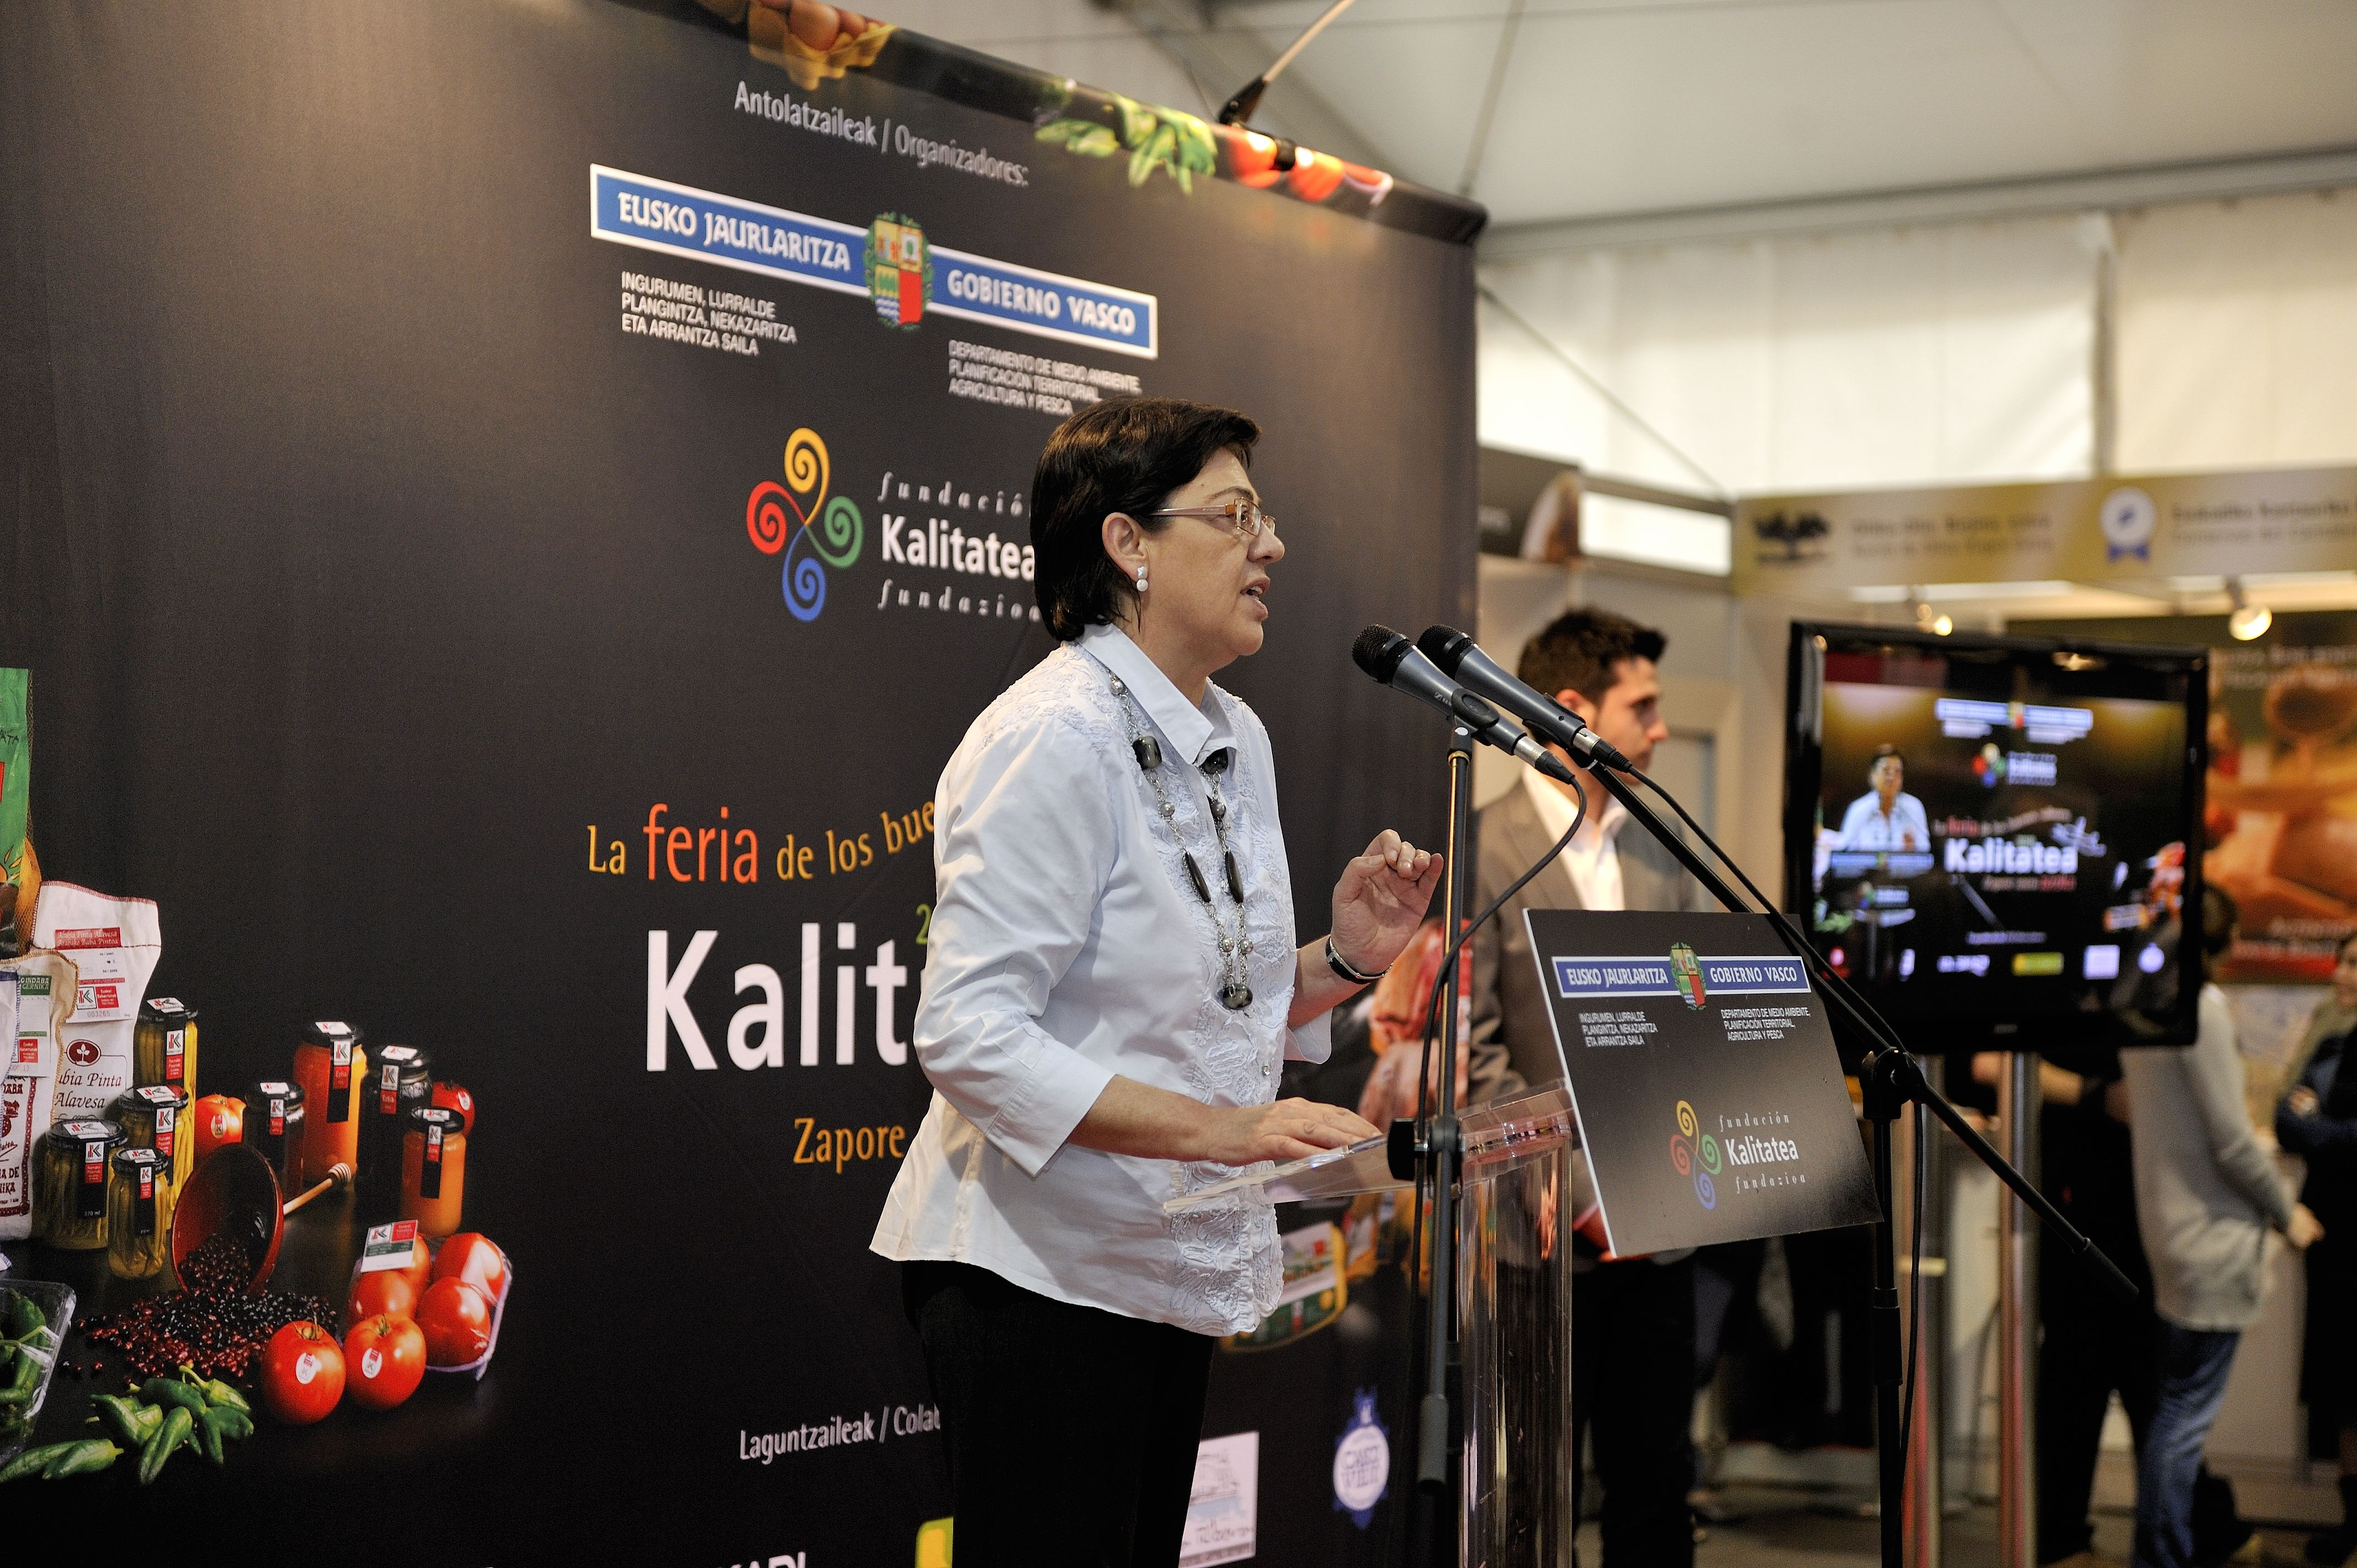 Inauguracin I Feria Kalitatea; La feria de los buenos sabores